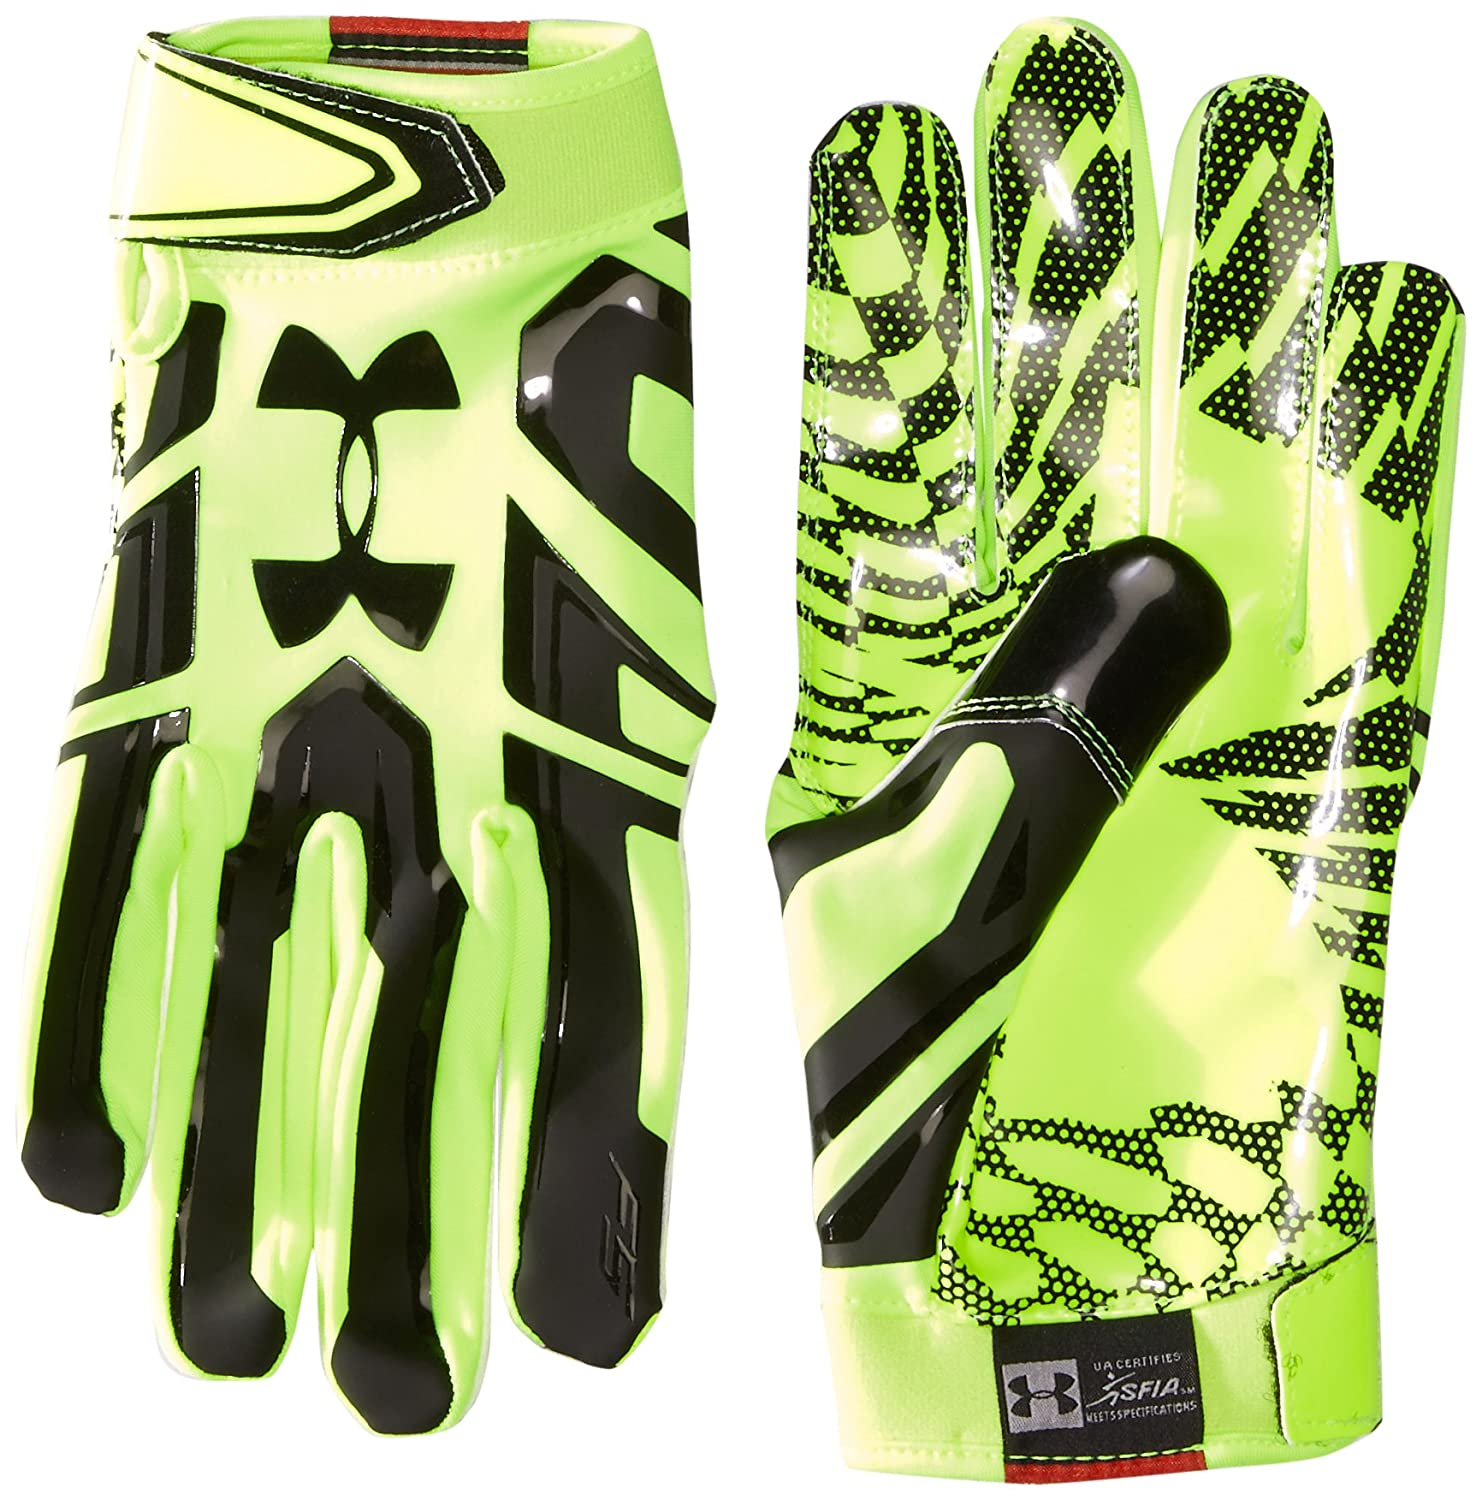 Under Armourメンズf5 Football Gloves B01H8MDHIO X-Large|High-Vis Yellow/Black High-Vis Yellow/Black X-Large